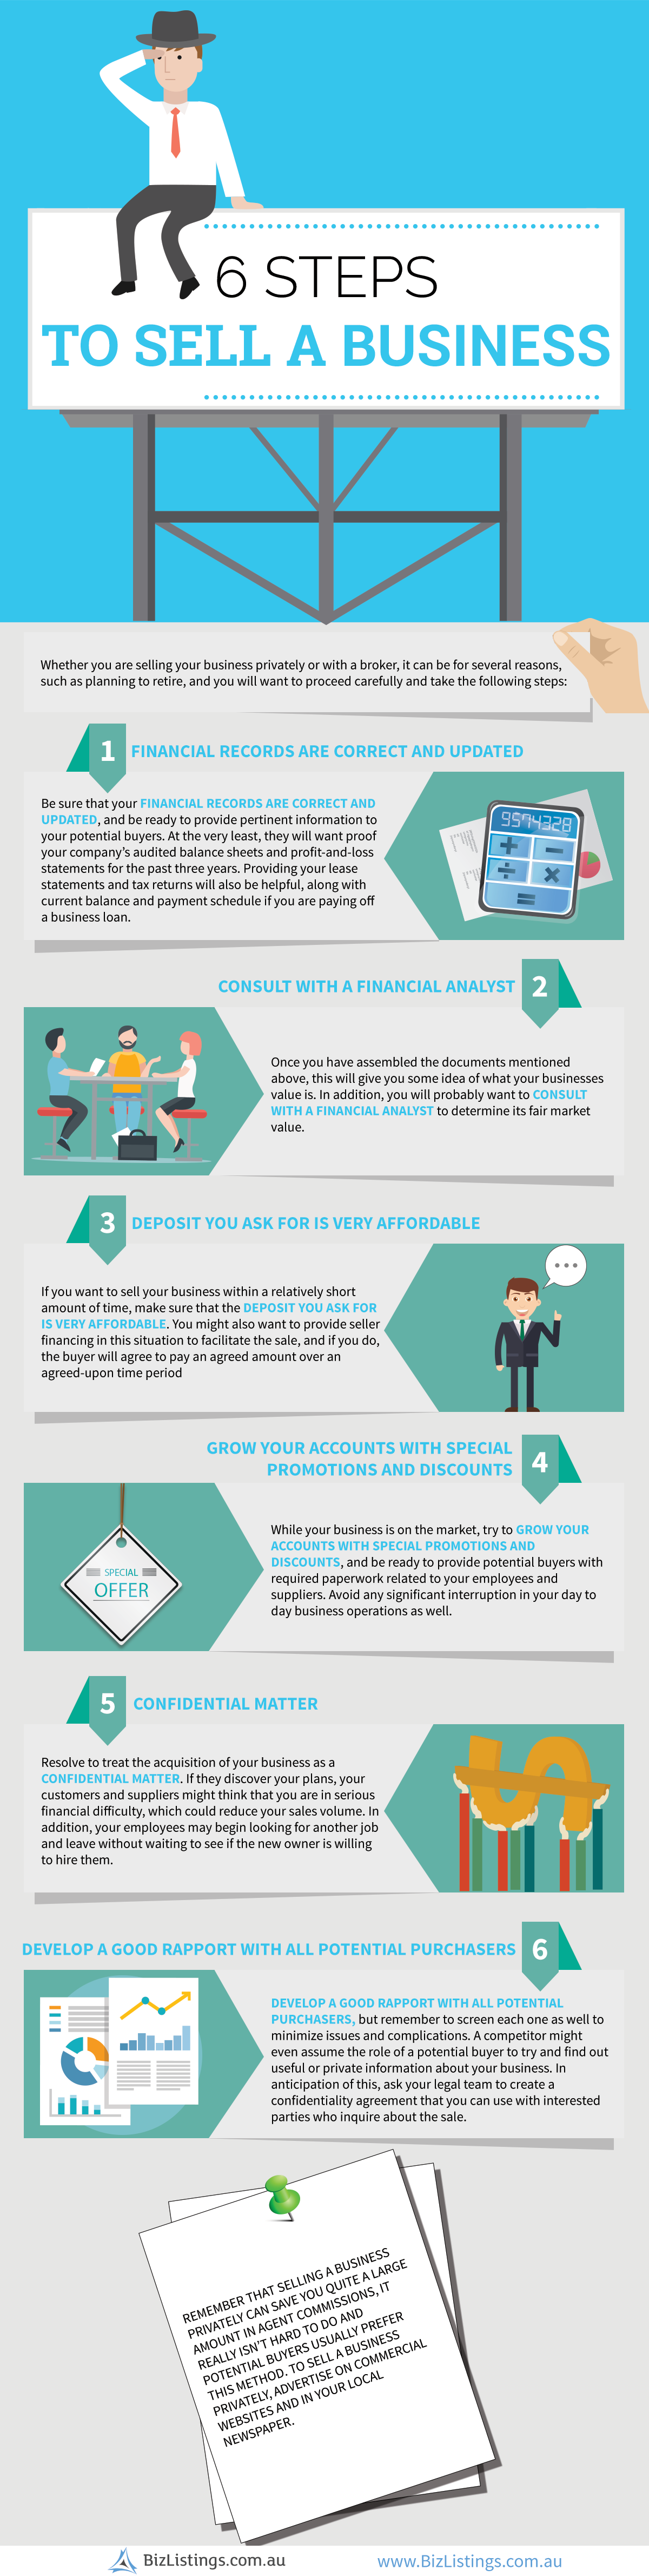 6 Steps to Sell a Business (Infographic)